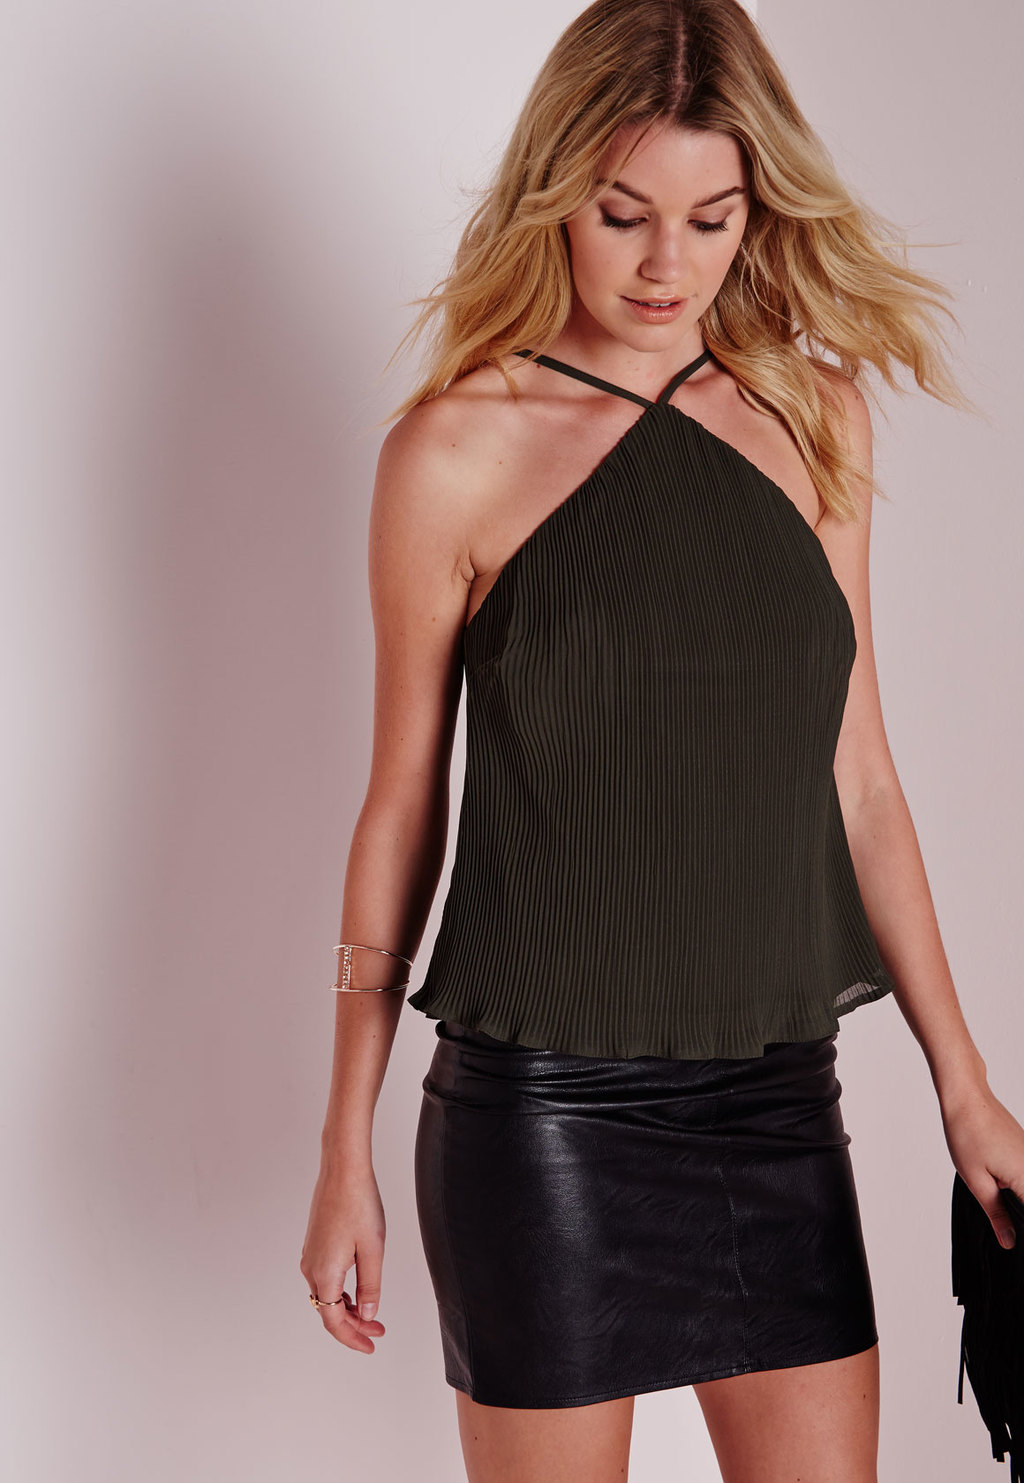 Strappy Pleated Cami Khaki, Beige - pattern: plain; sleeve style: sleeveless; style: camisole; neckline: low halter neck; predominant colour: khaki; occasions: evening; length: standard; fibres: polyester/polyamide - 100%; fit: straight cut; sleeve length: sleeveless; texture group: sheer fabrics/chiffon/organza etc.; bust detail: tiers/frills/bulky drapes/pleats; pattern type: fabric; season: a/w 2015; wardrobe: event